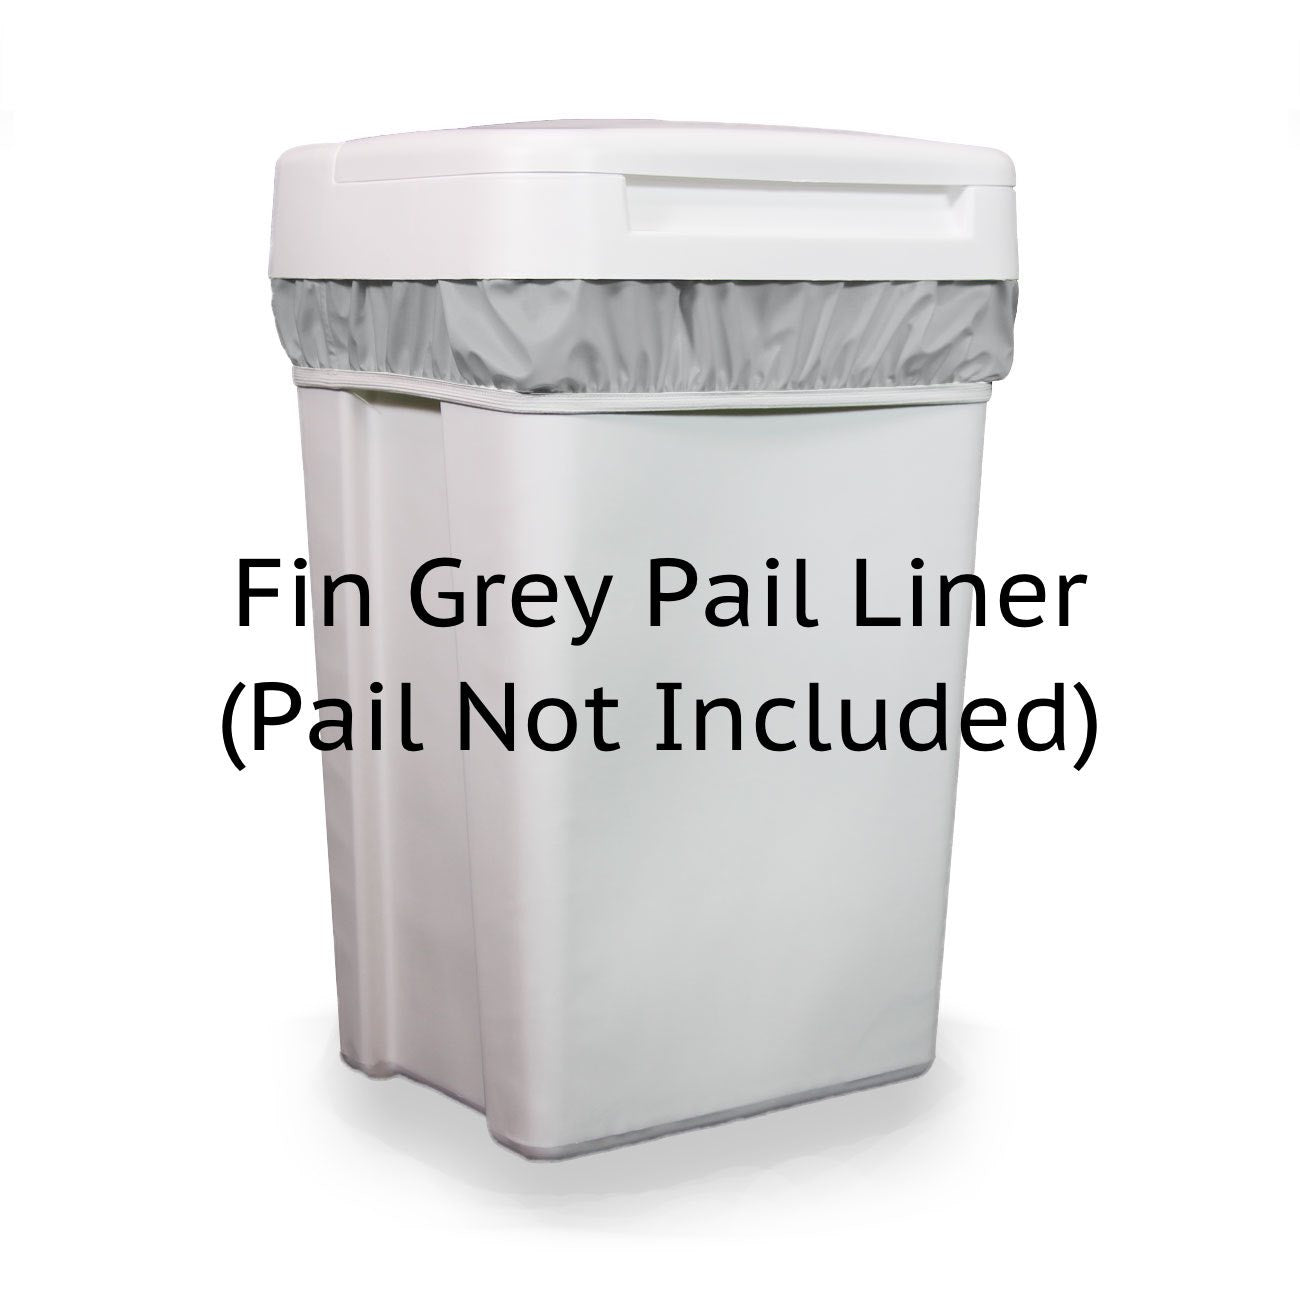 Thirsties Pail Liner Fin Grey